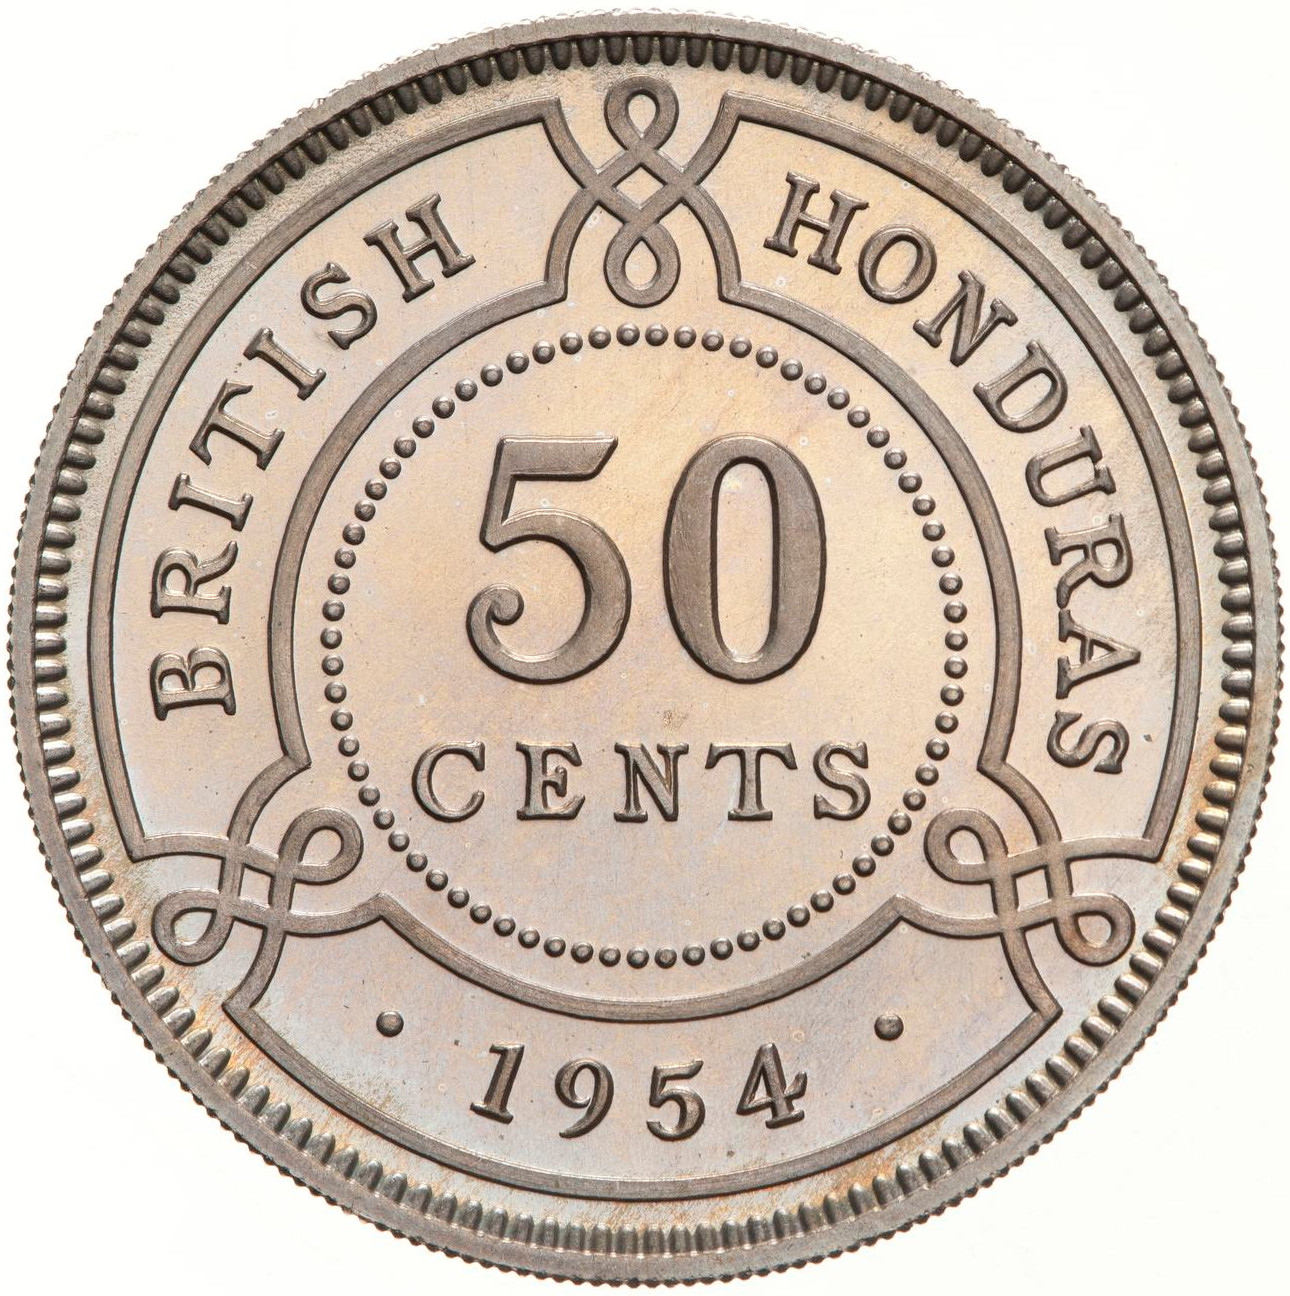 Fifty Cents: Photo Proof Coin - 50 Cents, British Honduras (Belize), 1954